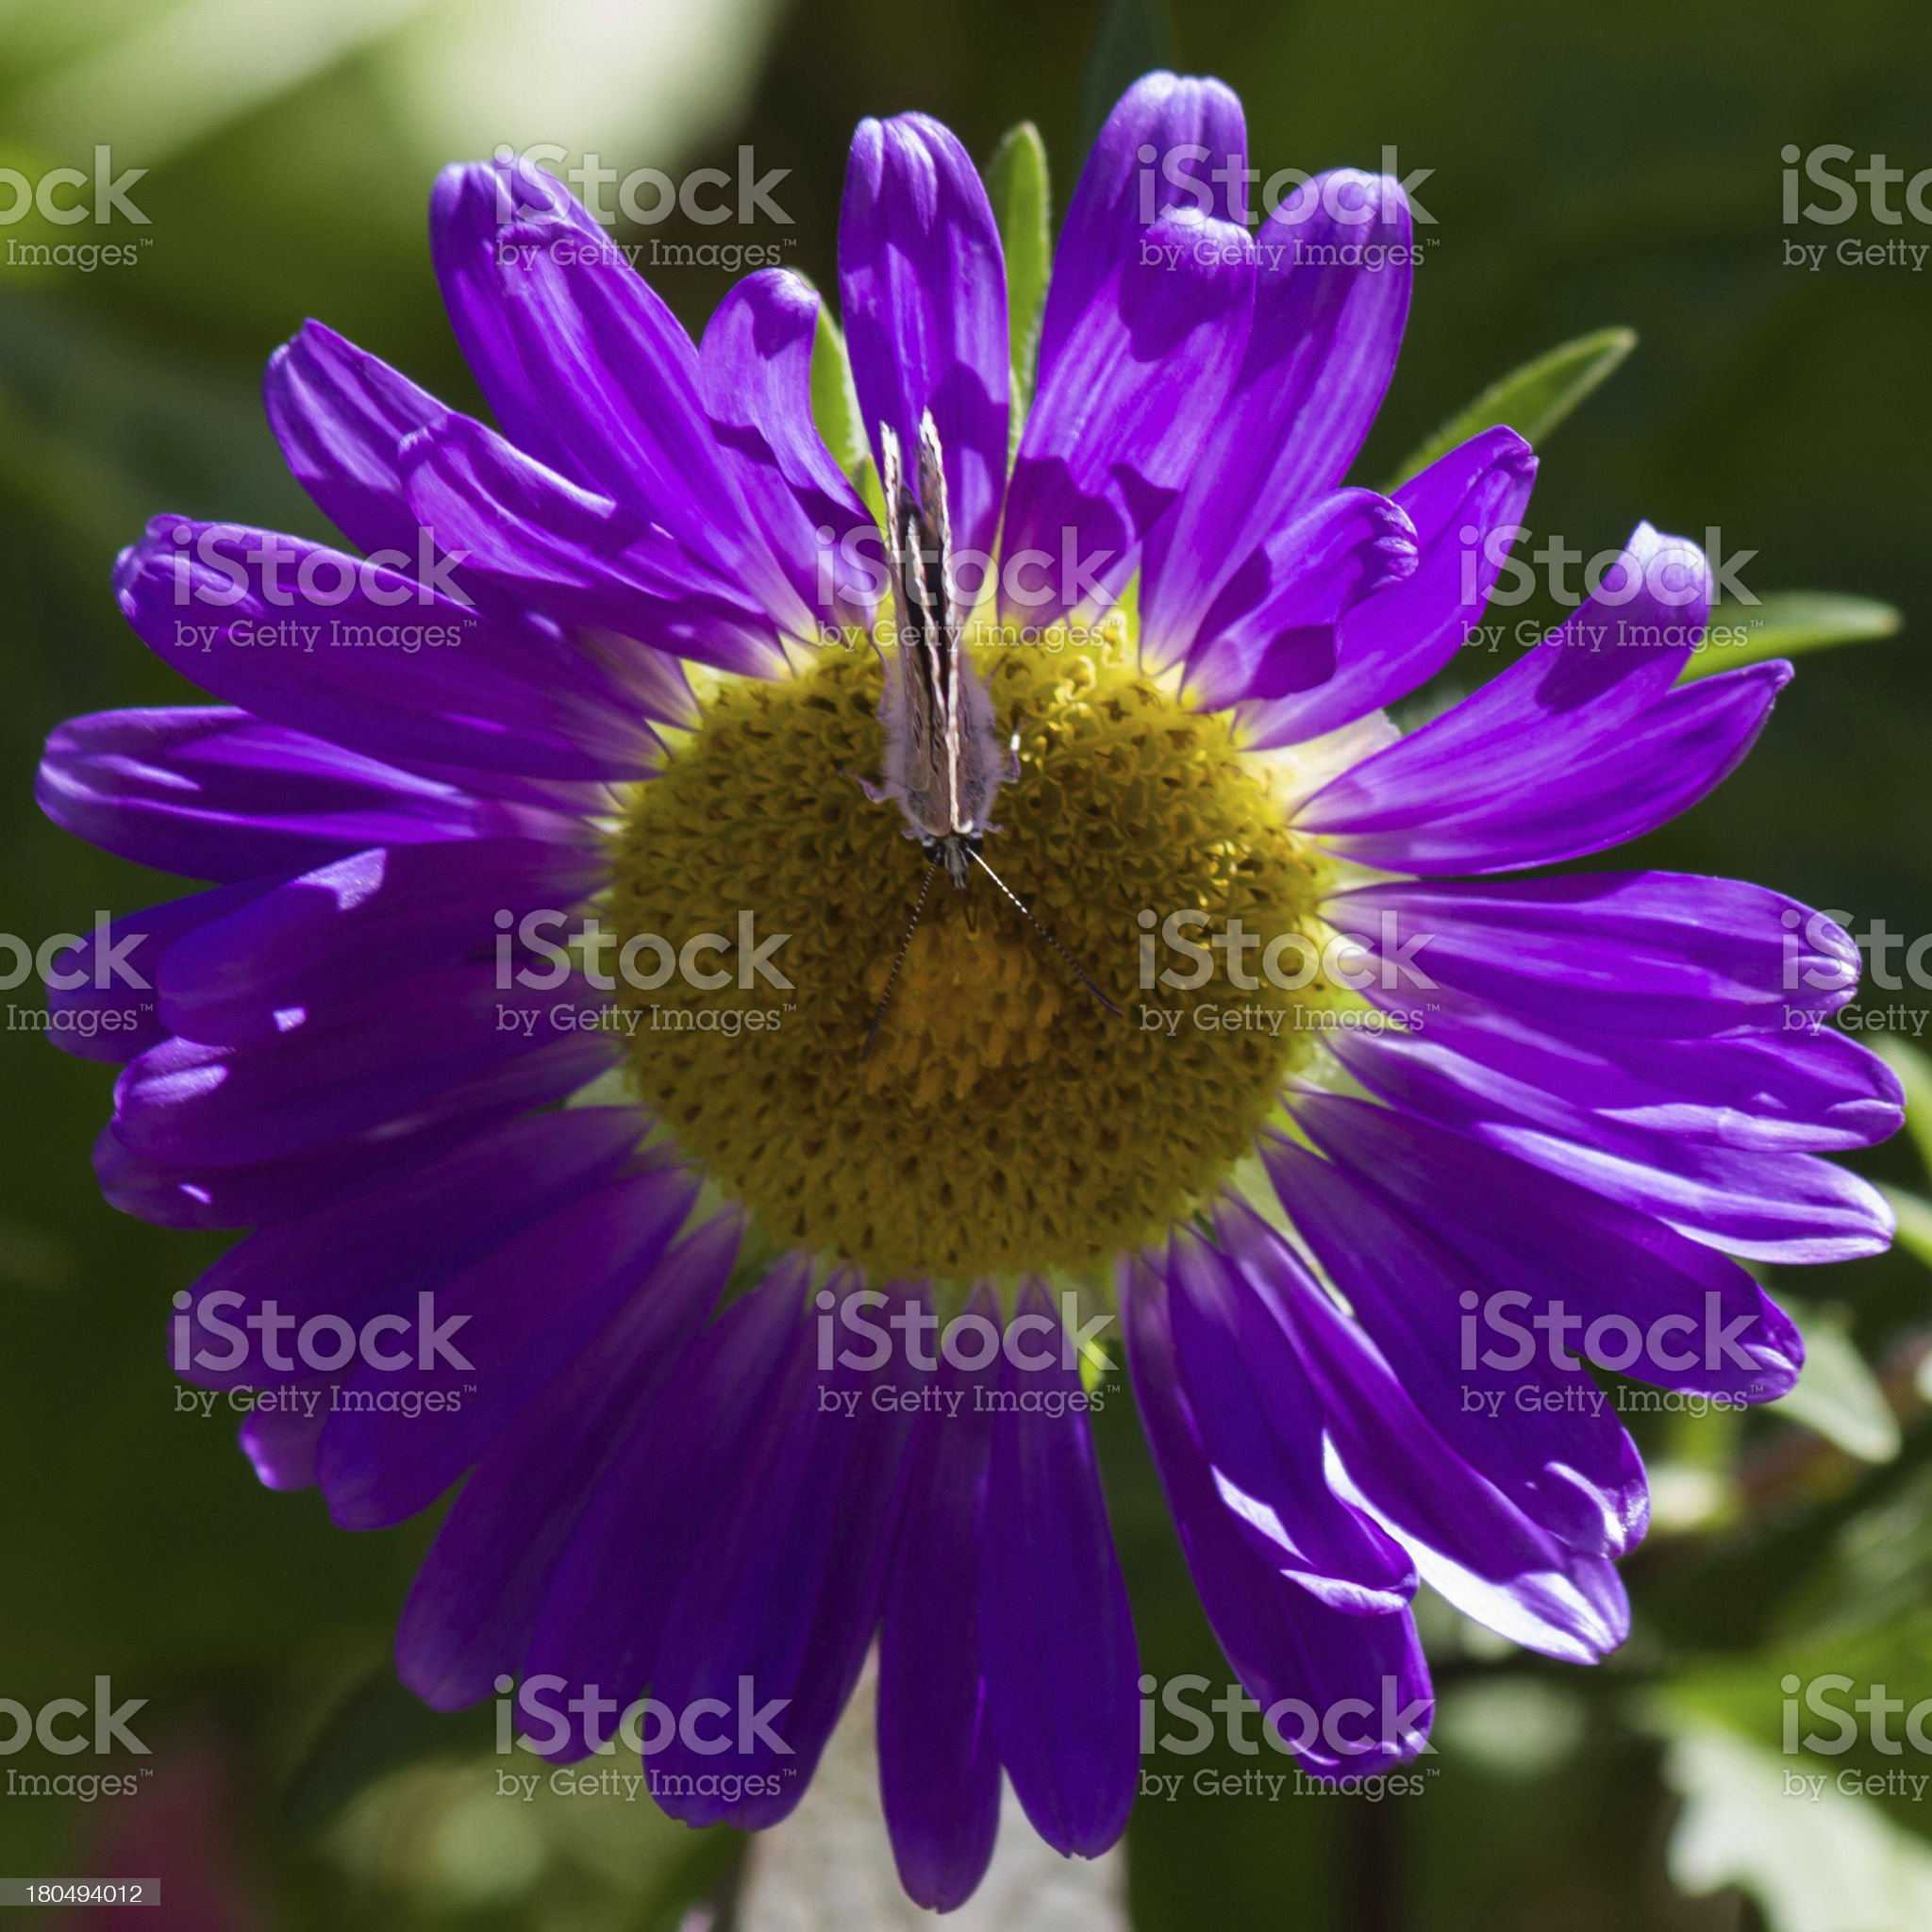 flower with butterfly - flor con mariposa royalty-free stock photo